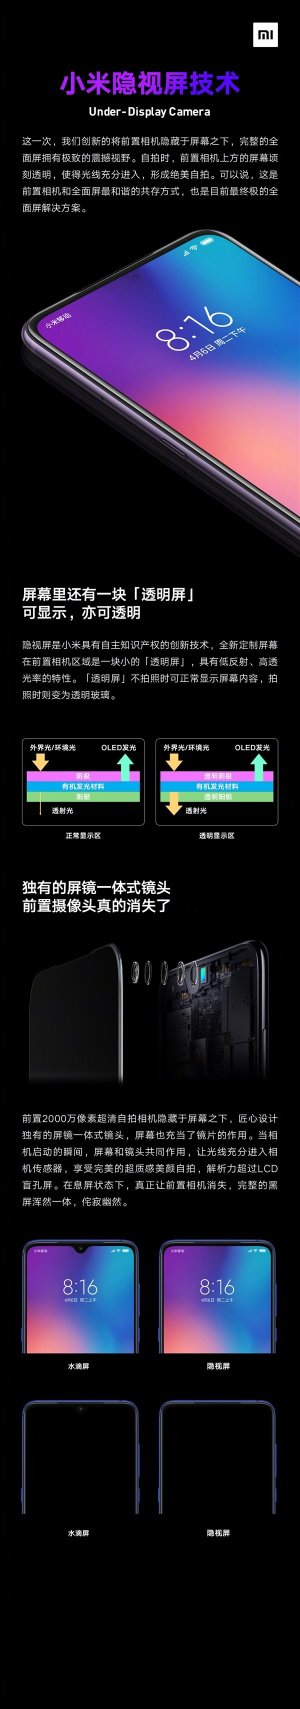 Xiaomi Mi 9 Under-Screen Camera Version Weib Poster